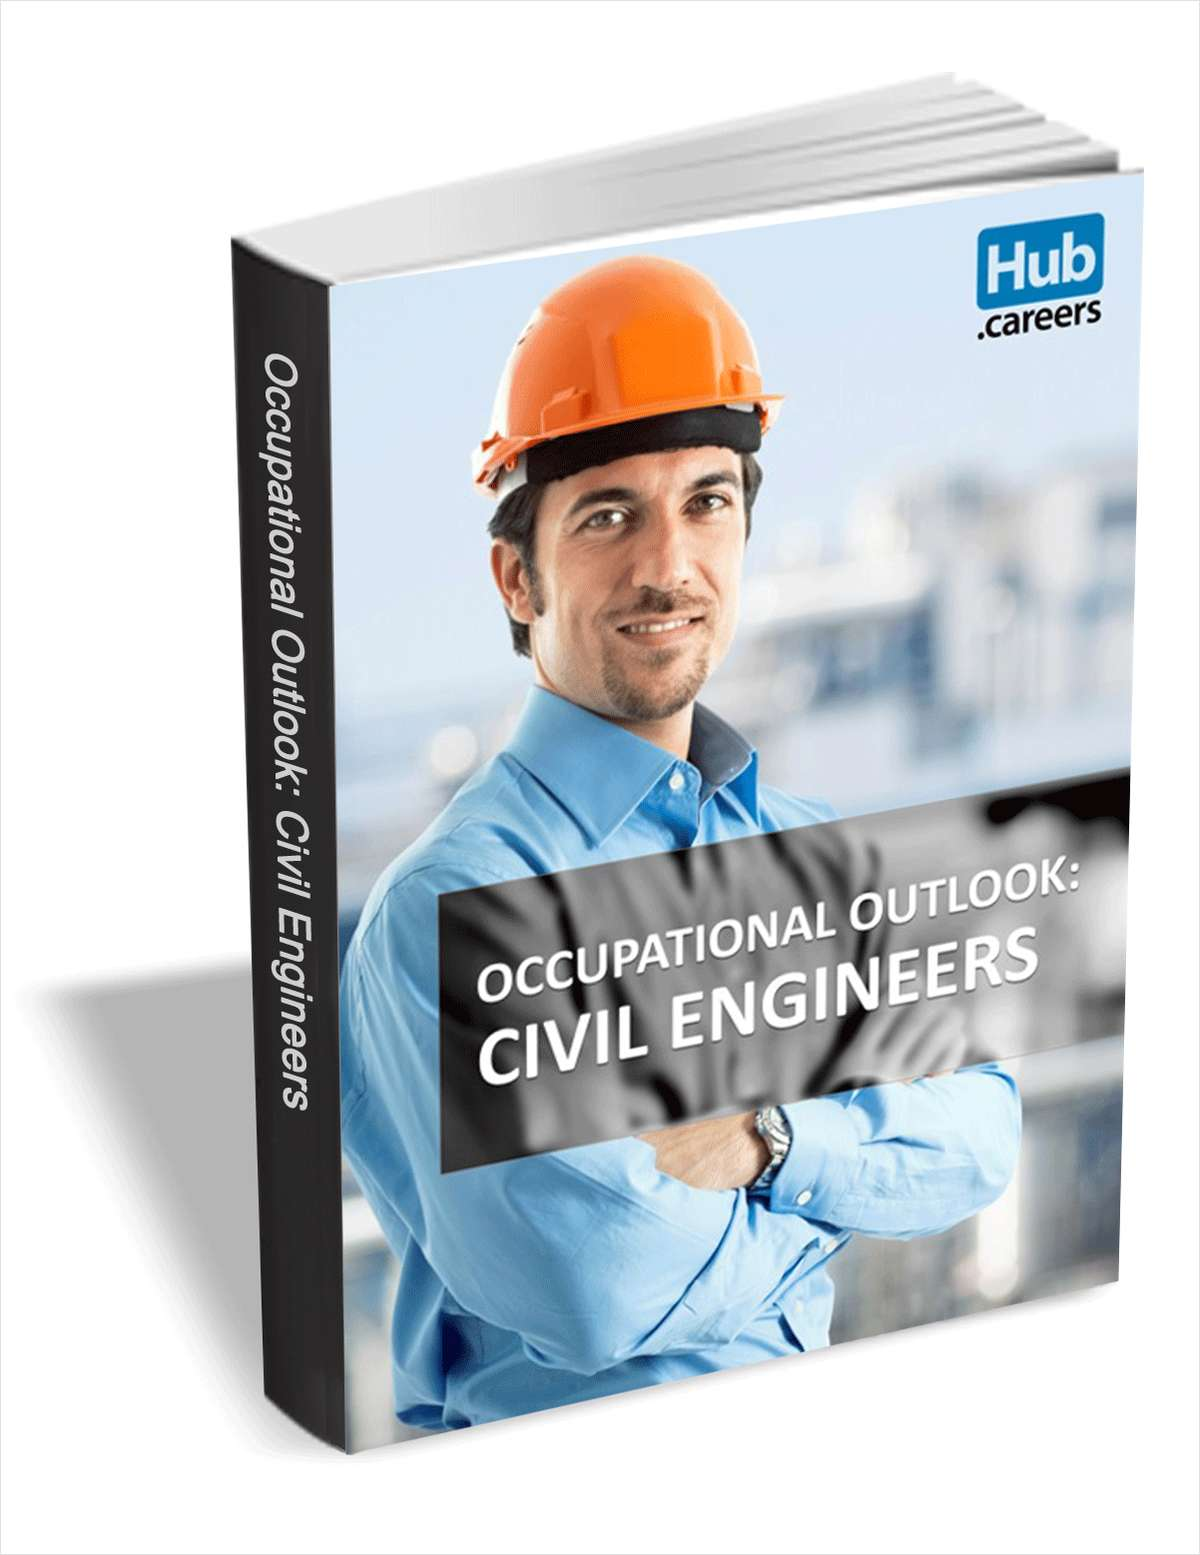 Civil Engineers - Occupational Outlook